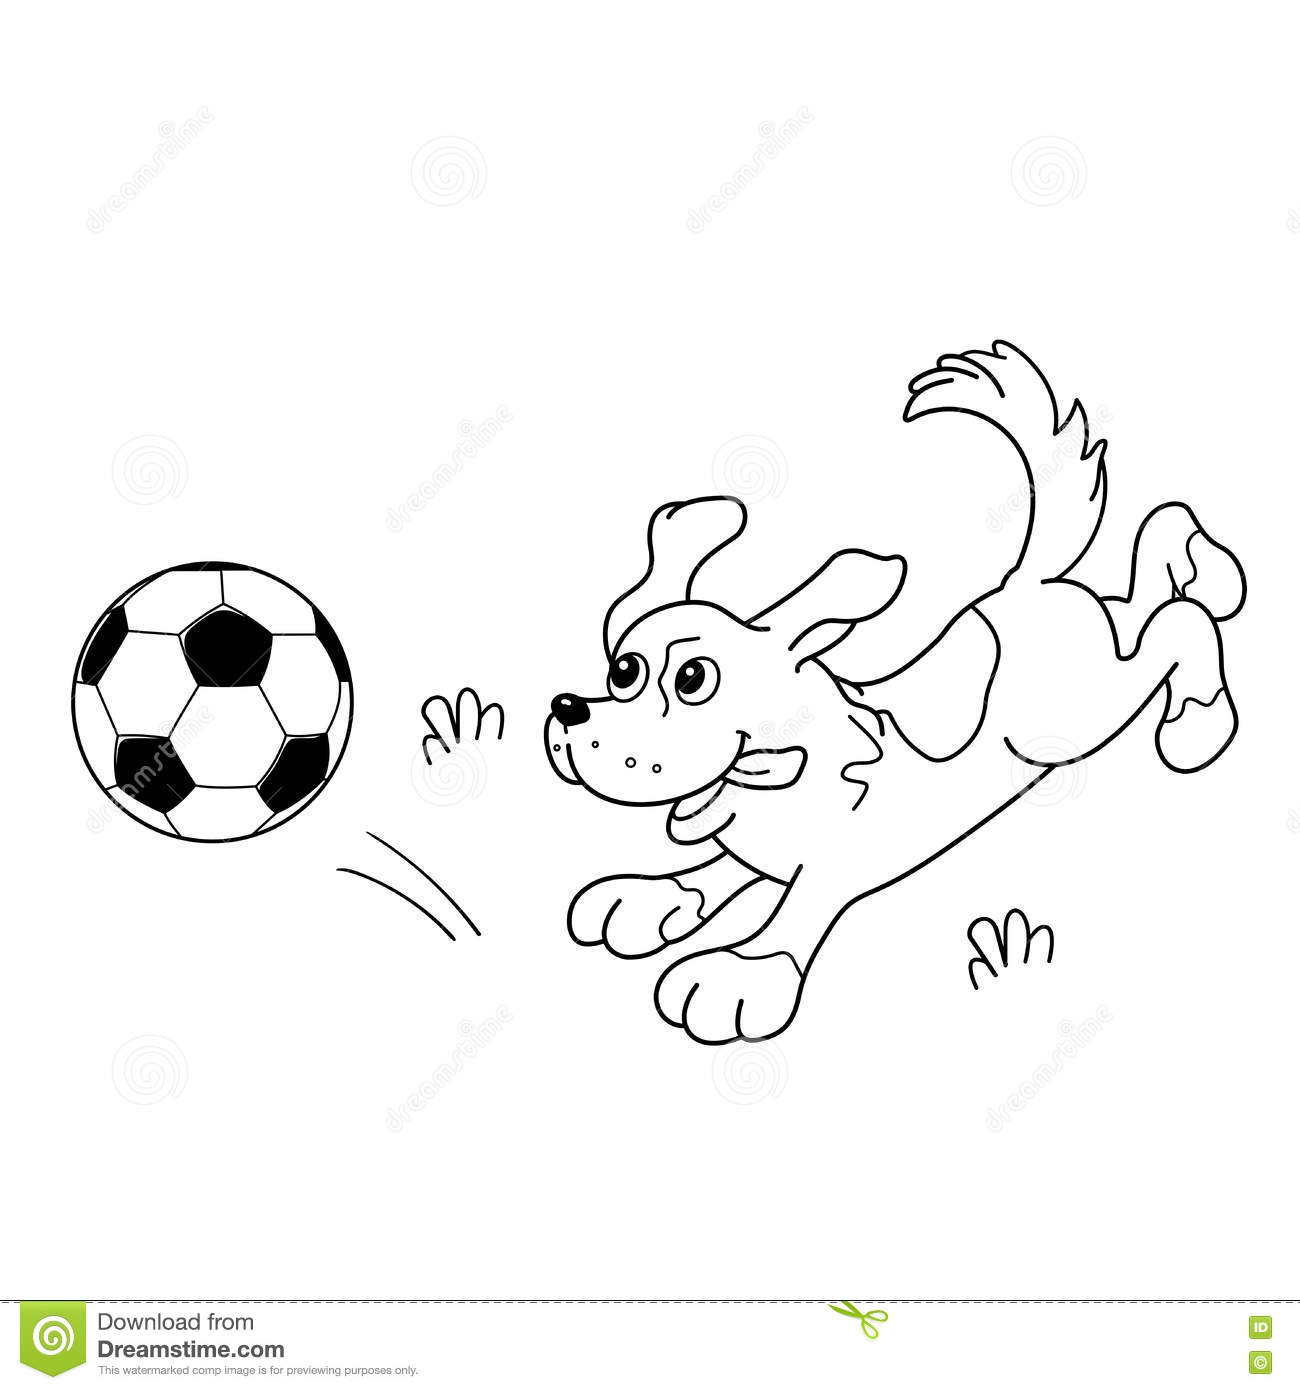 Coloring Page Outline Of Cartoon Dog With Soccer Ball. Stock Vector ...